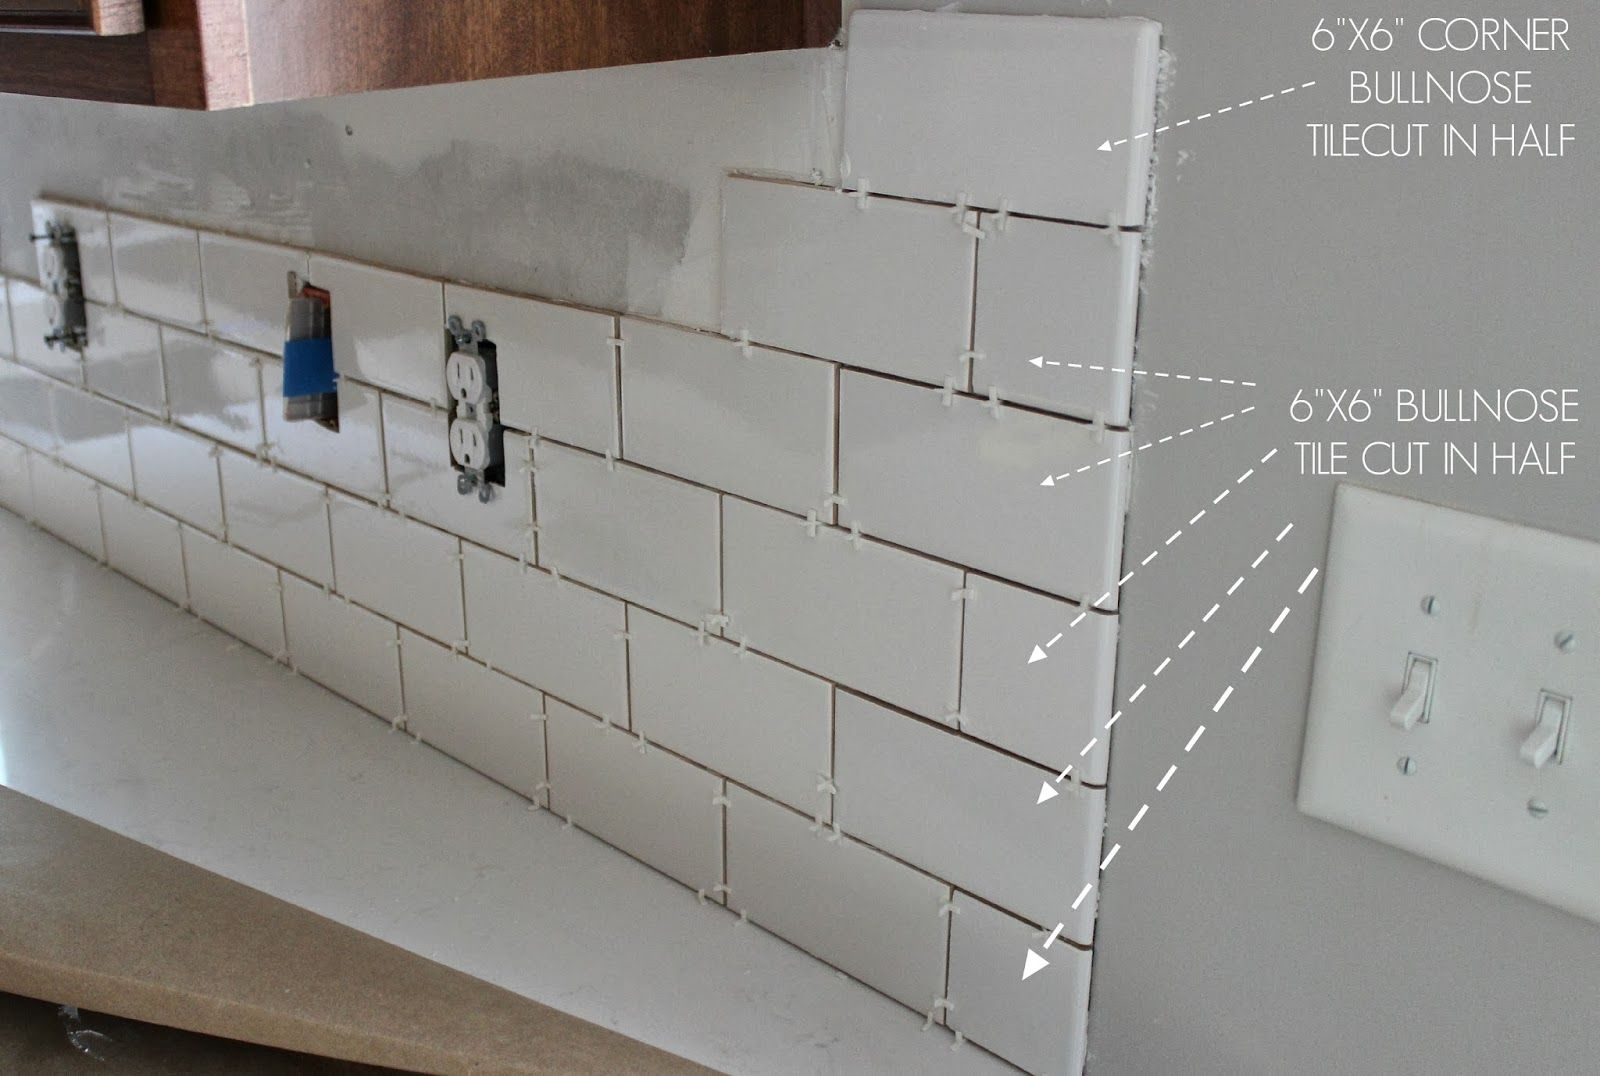 Kitchen chronicles a diy subway tile backsplash part 1 subway kitchen chronicles a diy subway tile backsplash part 1 dailygadgetfo Choice Image